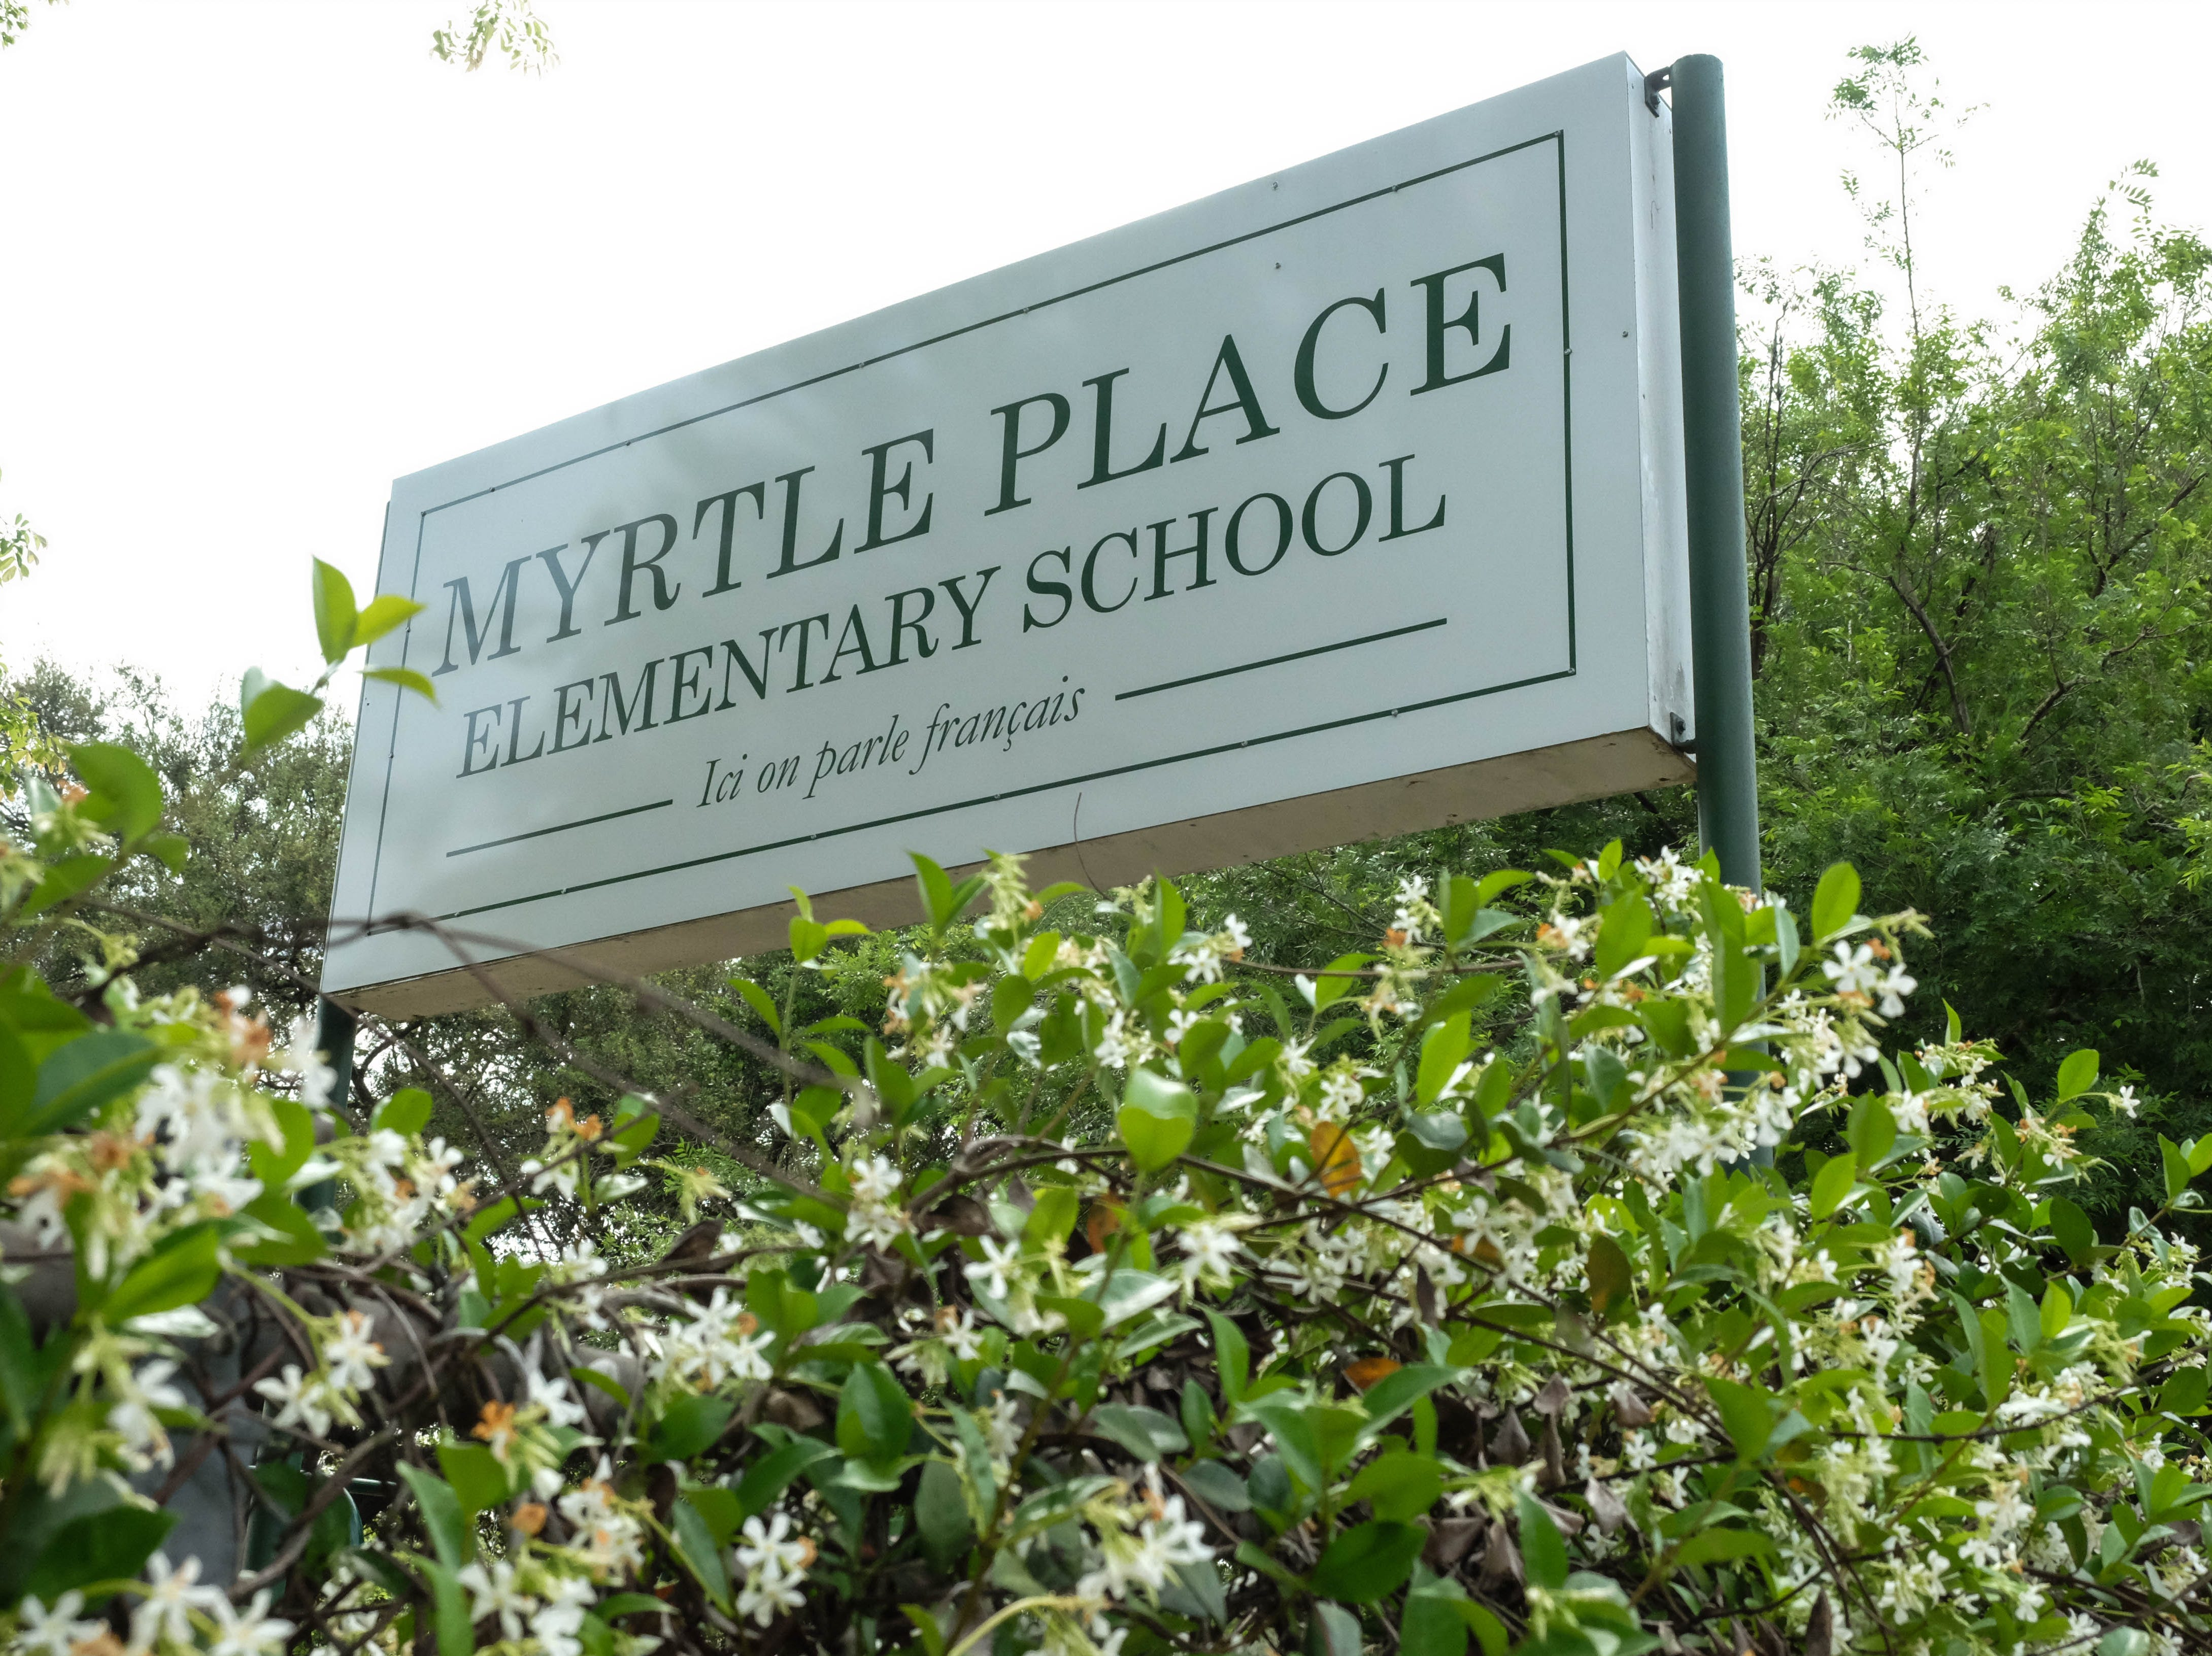 Myrtle Place Elementary School is hosting 32 students from Martinique this week. They will perform songs in French, Creole and English at Festival International on April 28, 2019.